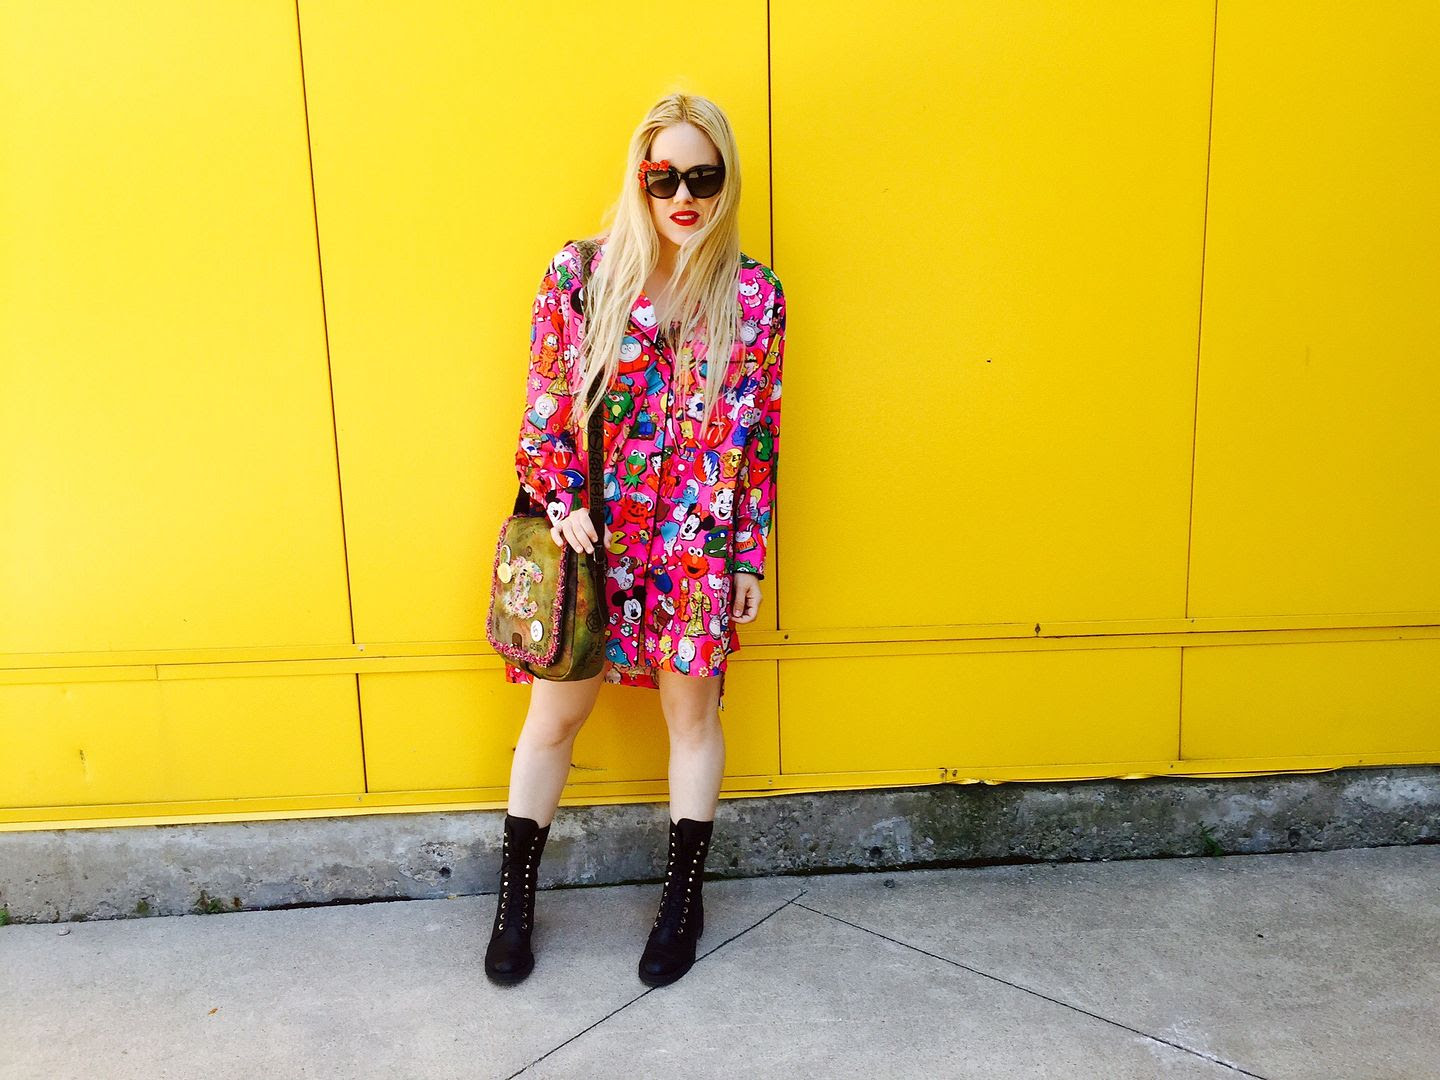 photo chanelblackboots-shirtdress-colorfuldress-annakarinkarlssonglasses_zpsqvnz735v.jpg